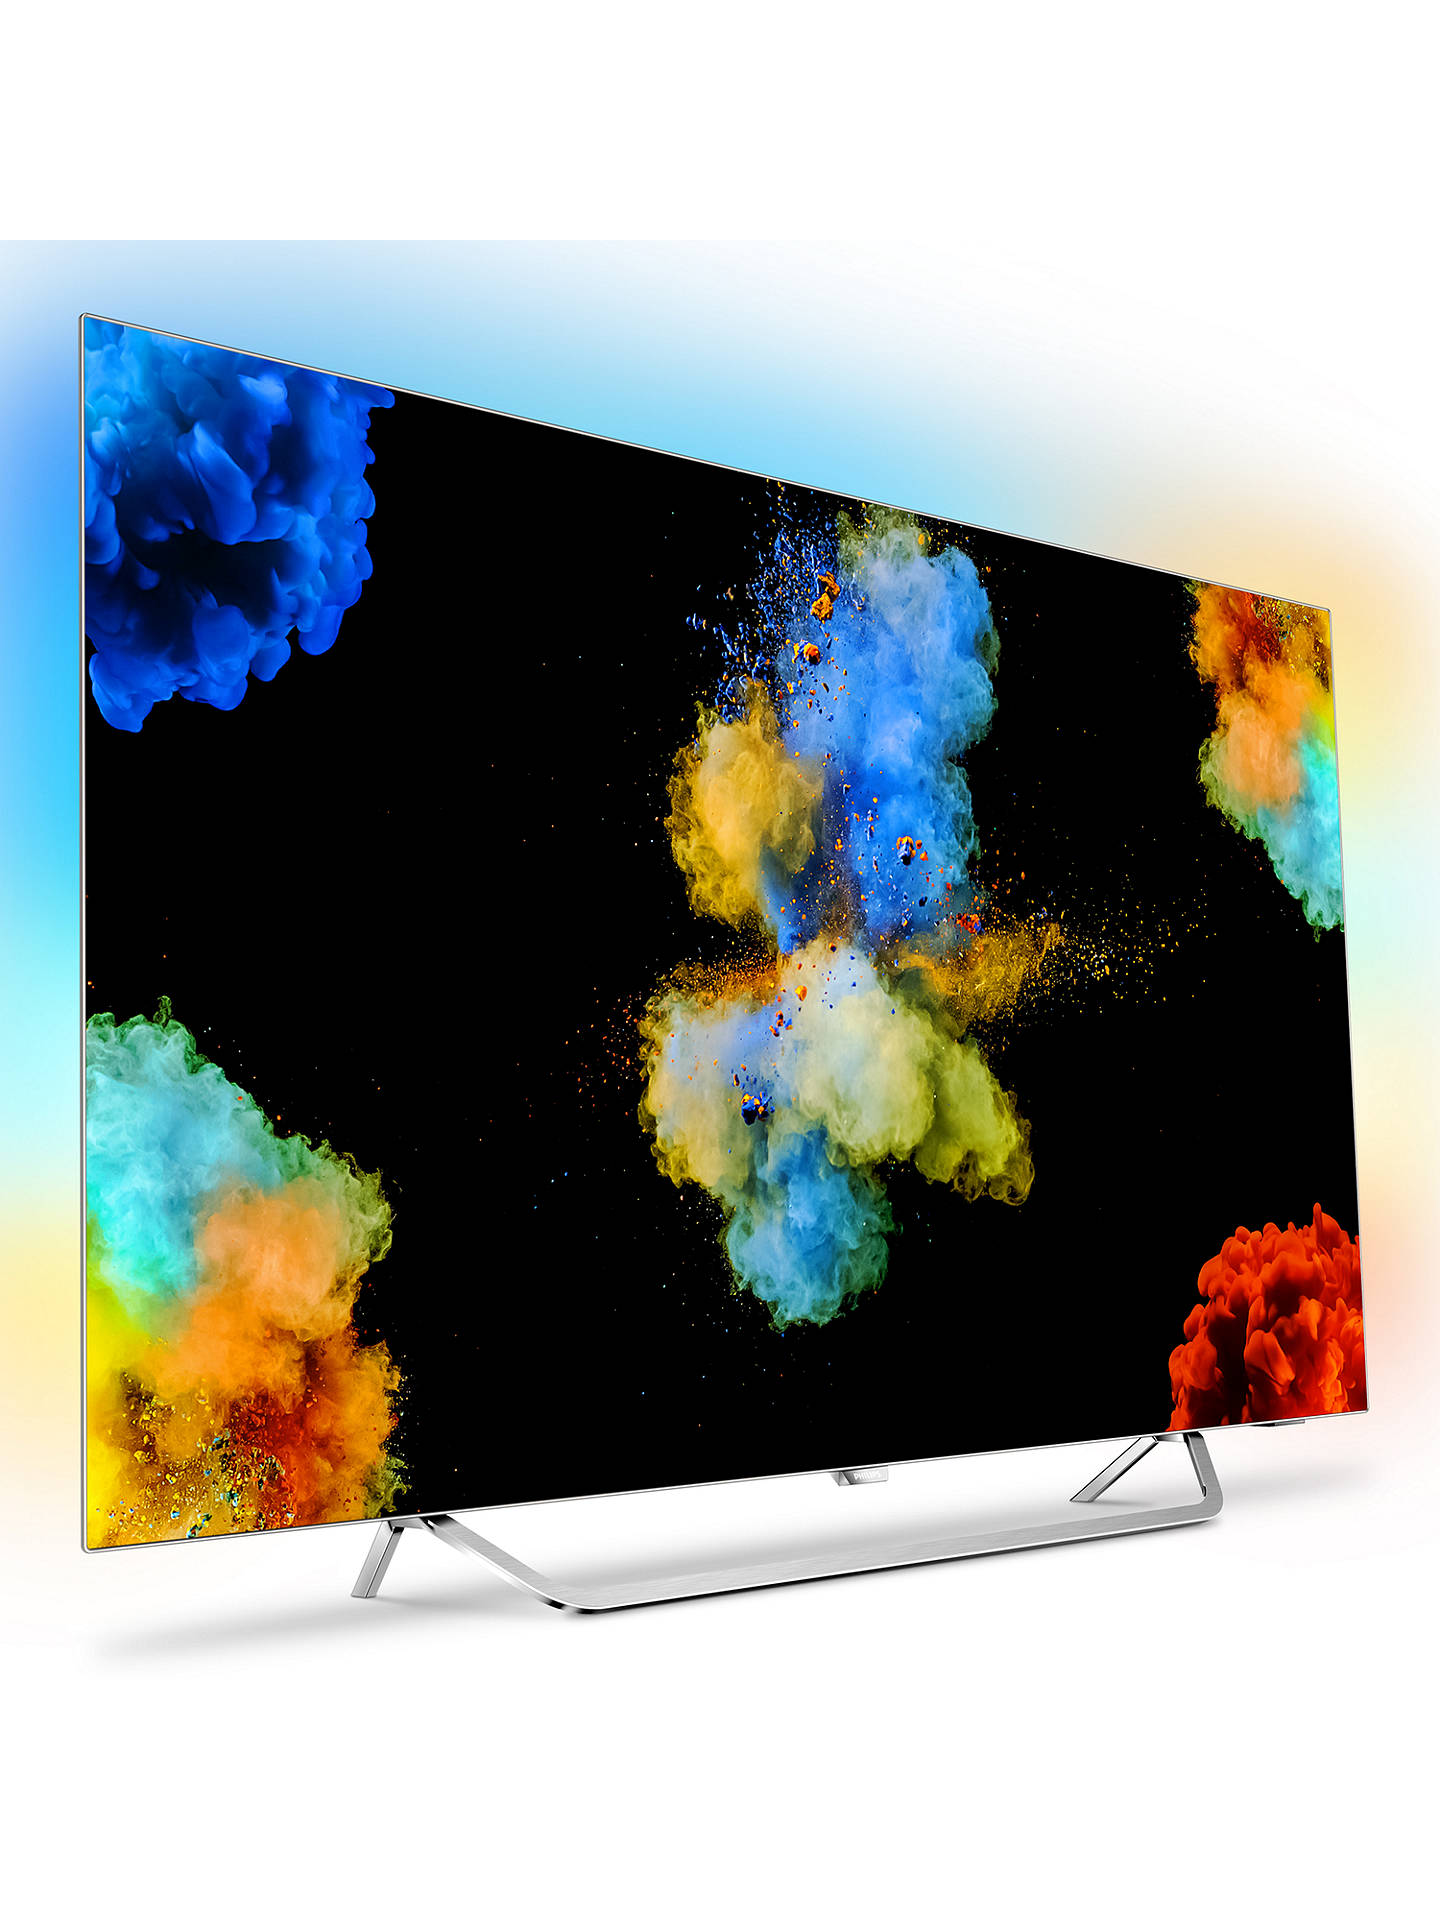 Philips 55POS9002 OLED HDR 4K Ultra HD Smart Android TV, 55